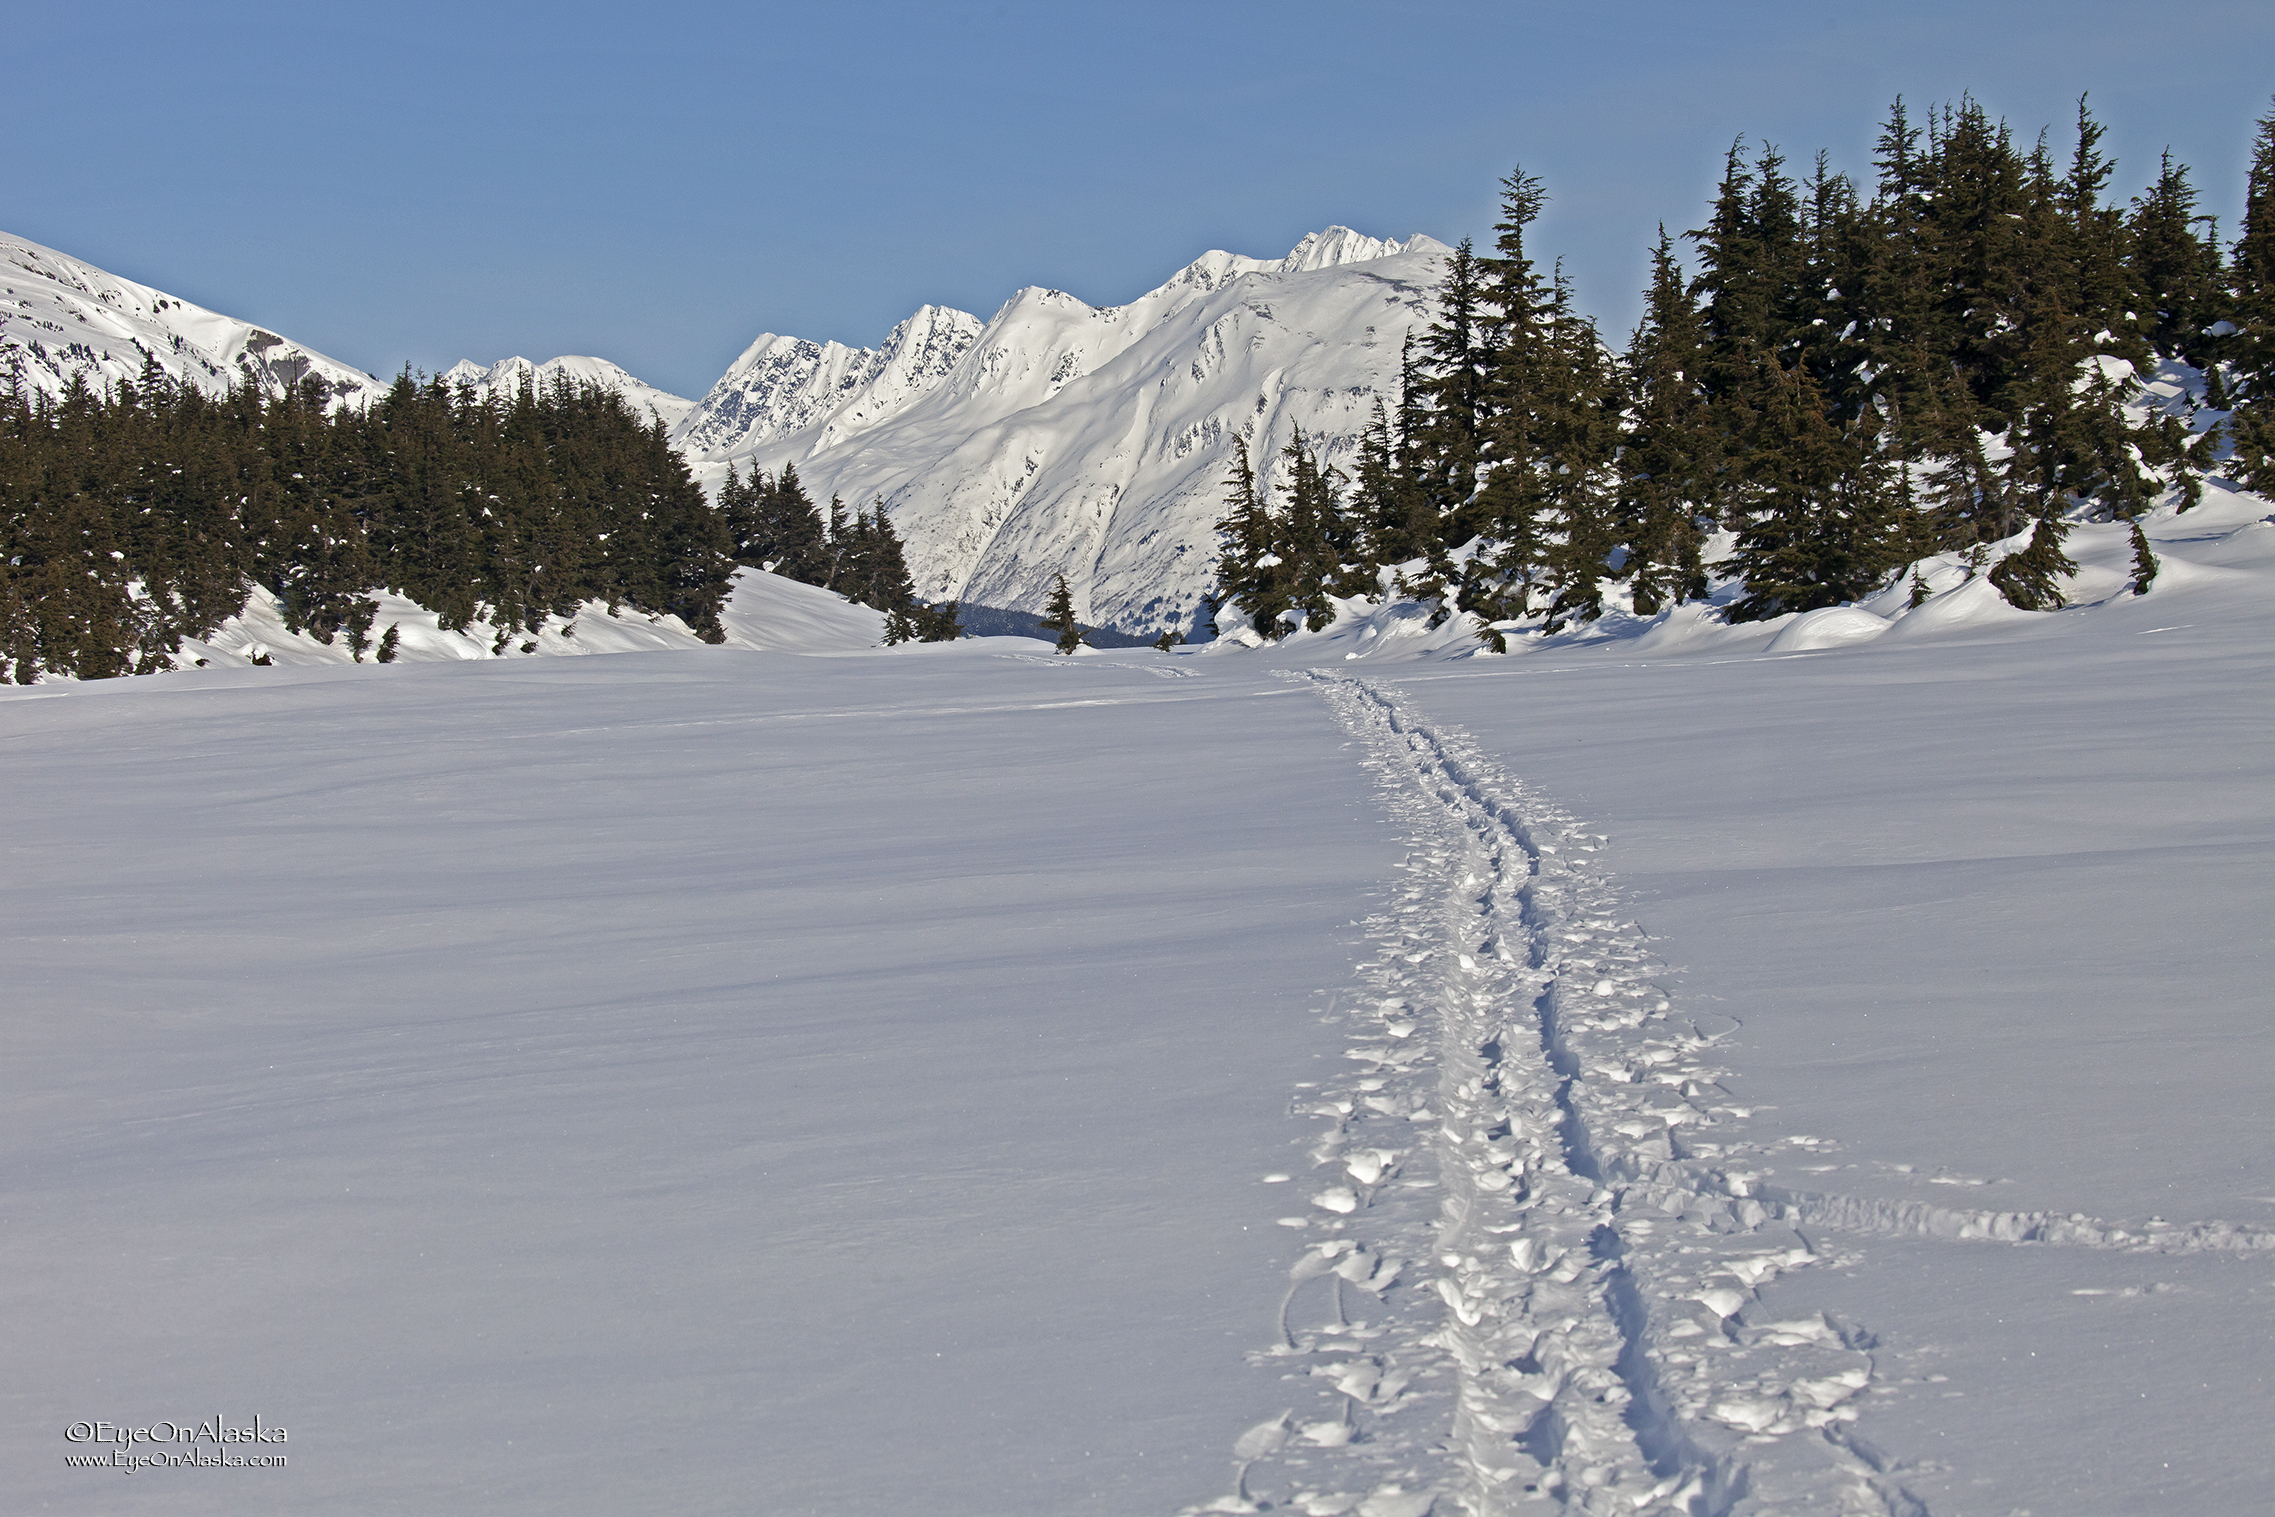 One set of older tracks leading exactly where we wanted to go.  Made it much easier for Xena to skijor.